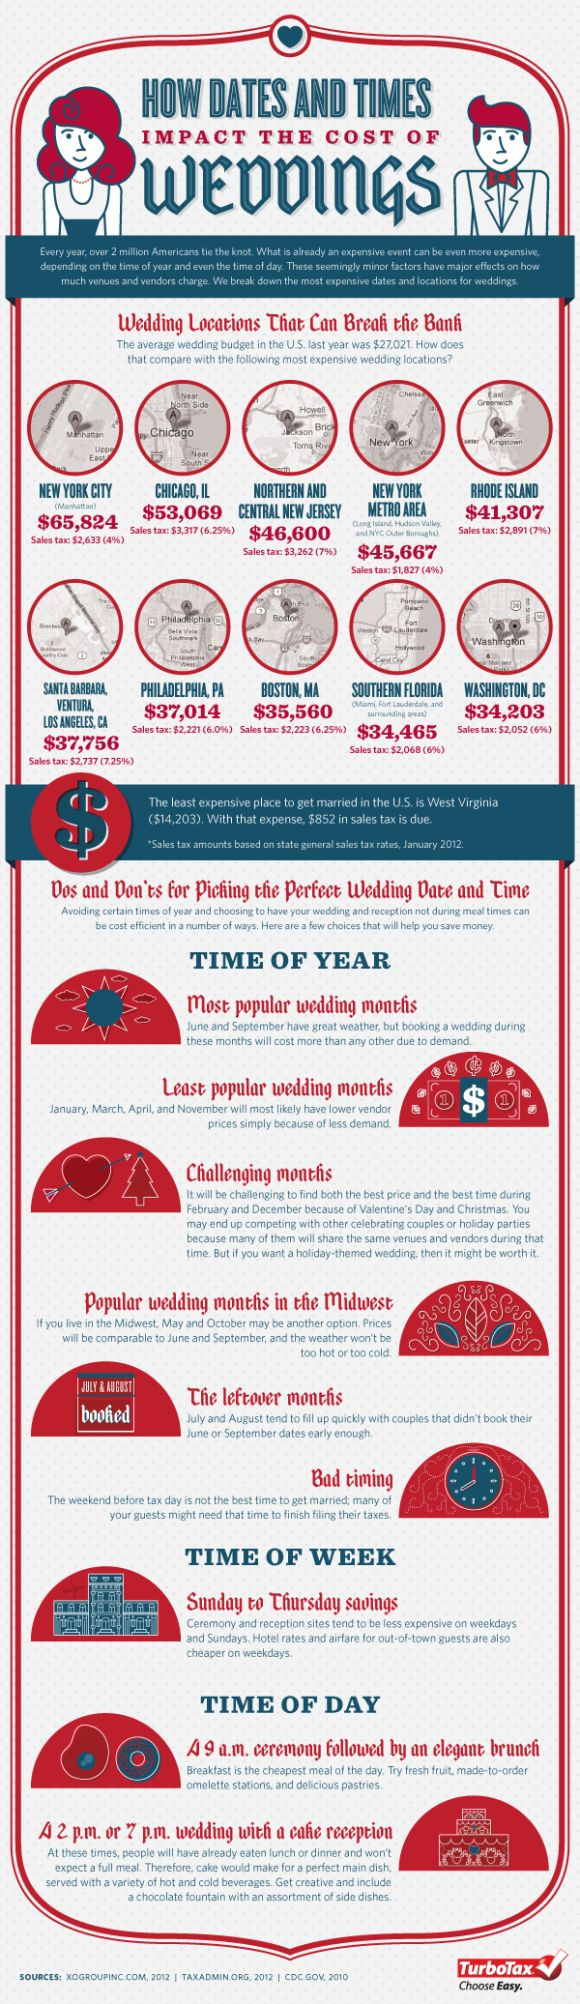 Best 25 the wedding date ideas on pinterest doing for Day of wedding planner cost